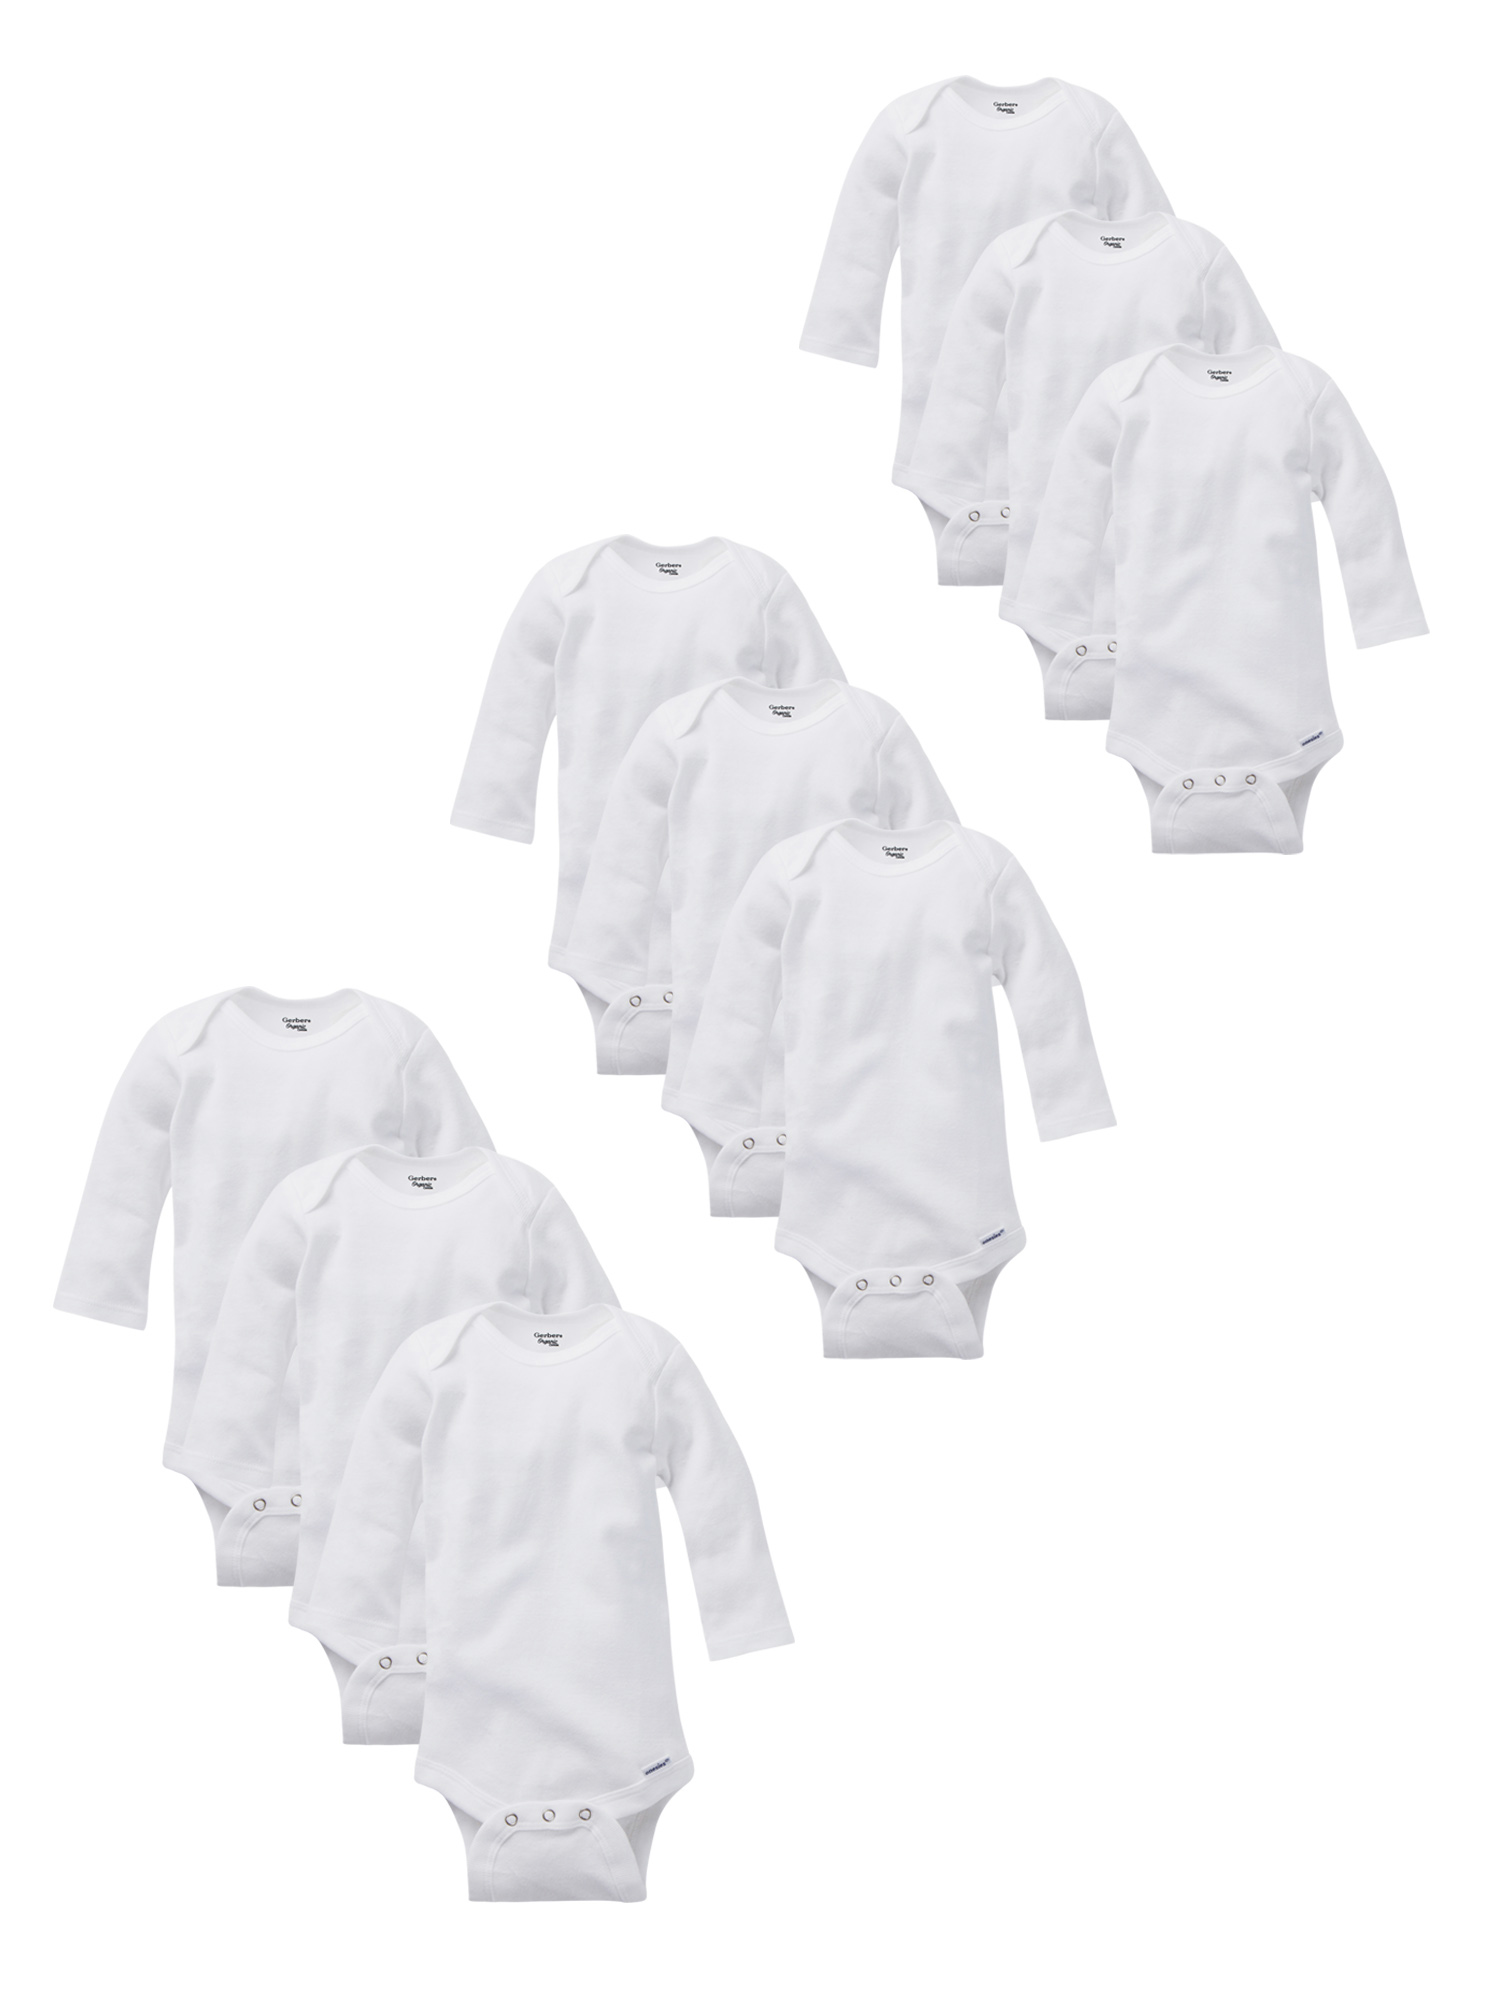 Organic Cotton Short Sleeve Onesies Grow-With-Me Bodysuits, 9-piece Set (Baby Boys or Baby Girls Unisex)